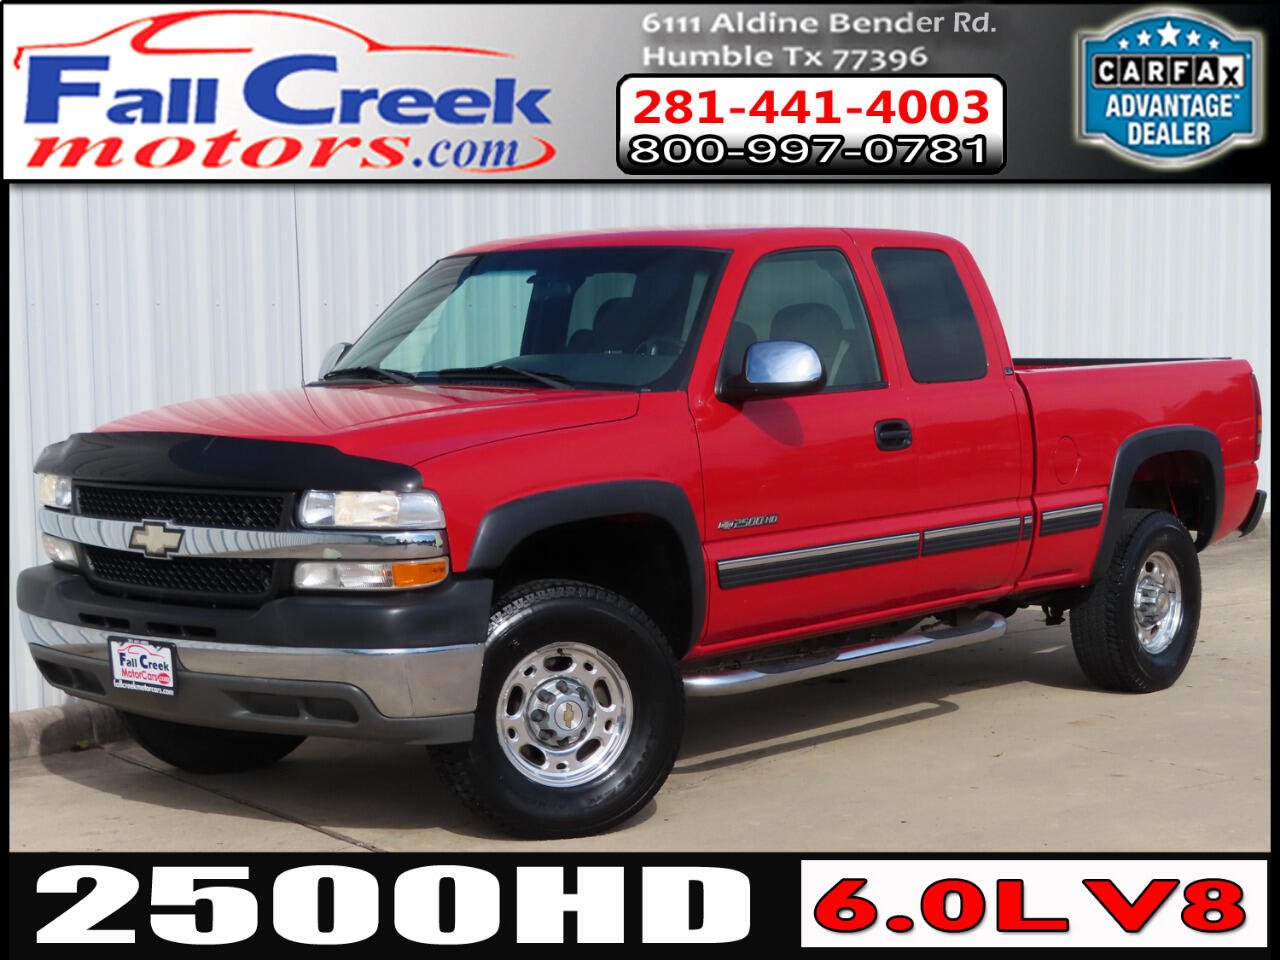 Chevrolet Silverado 2500HD LS Ext. Cab Short Bed 2WD 2002